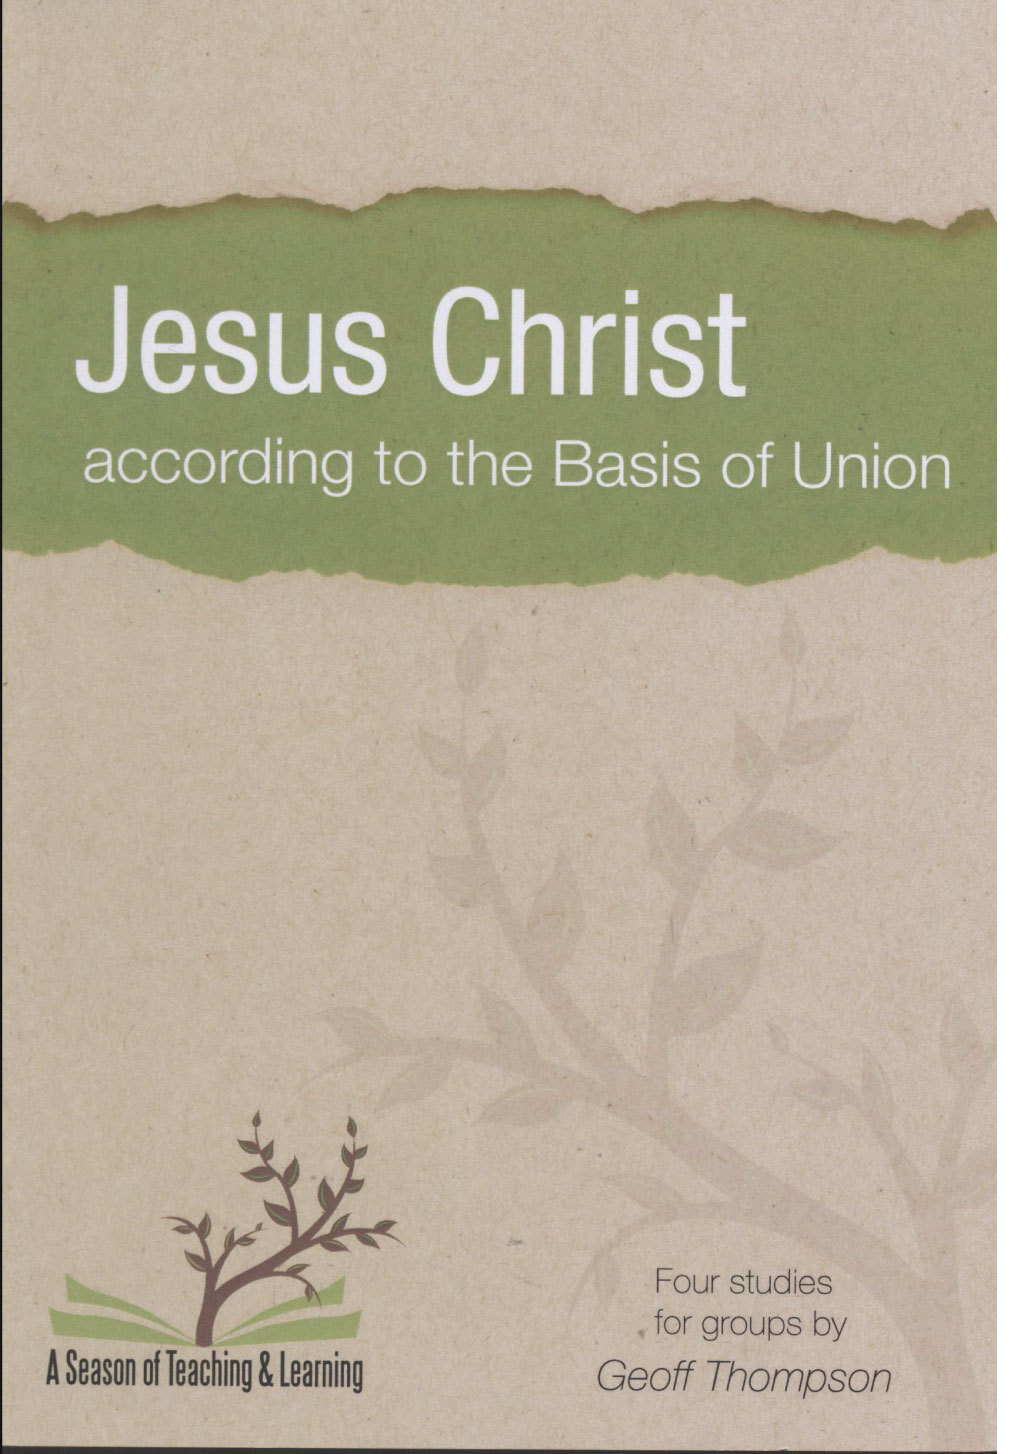 Jesus Christ According to the Basis of Union (2014)